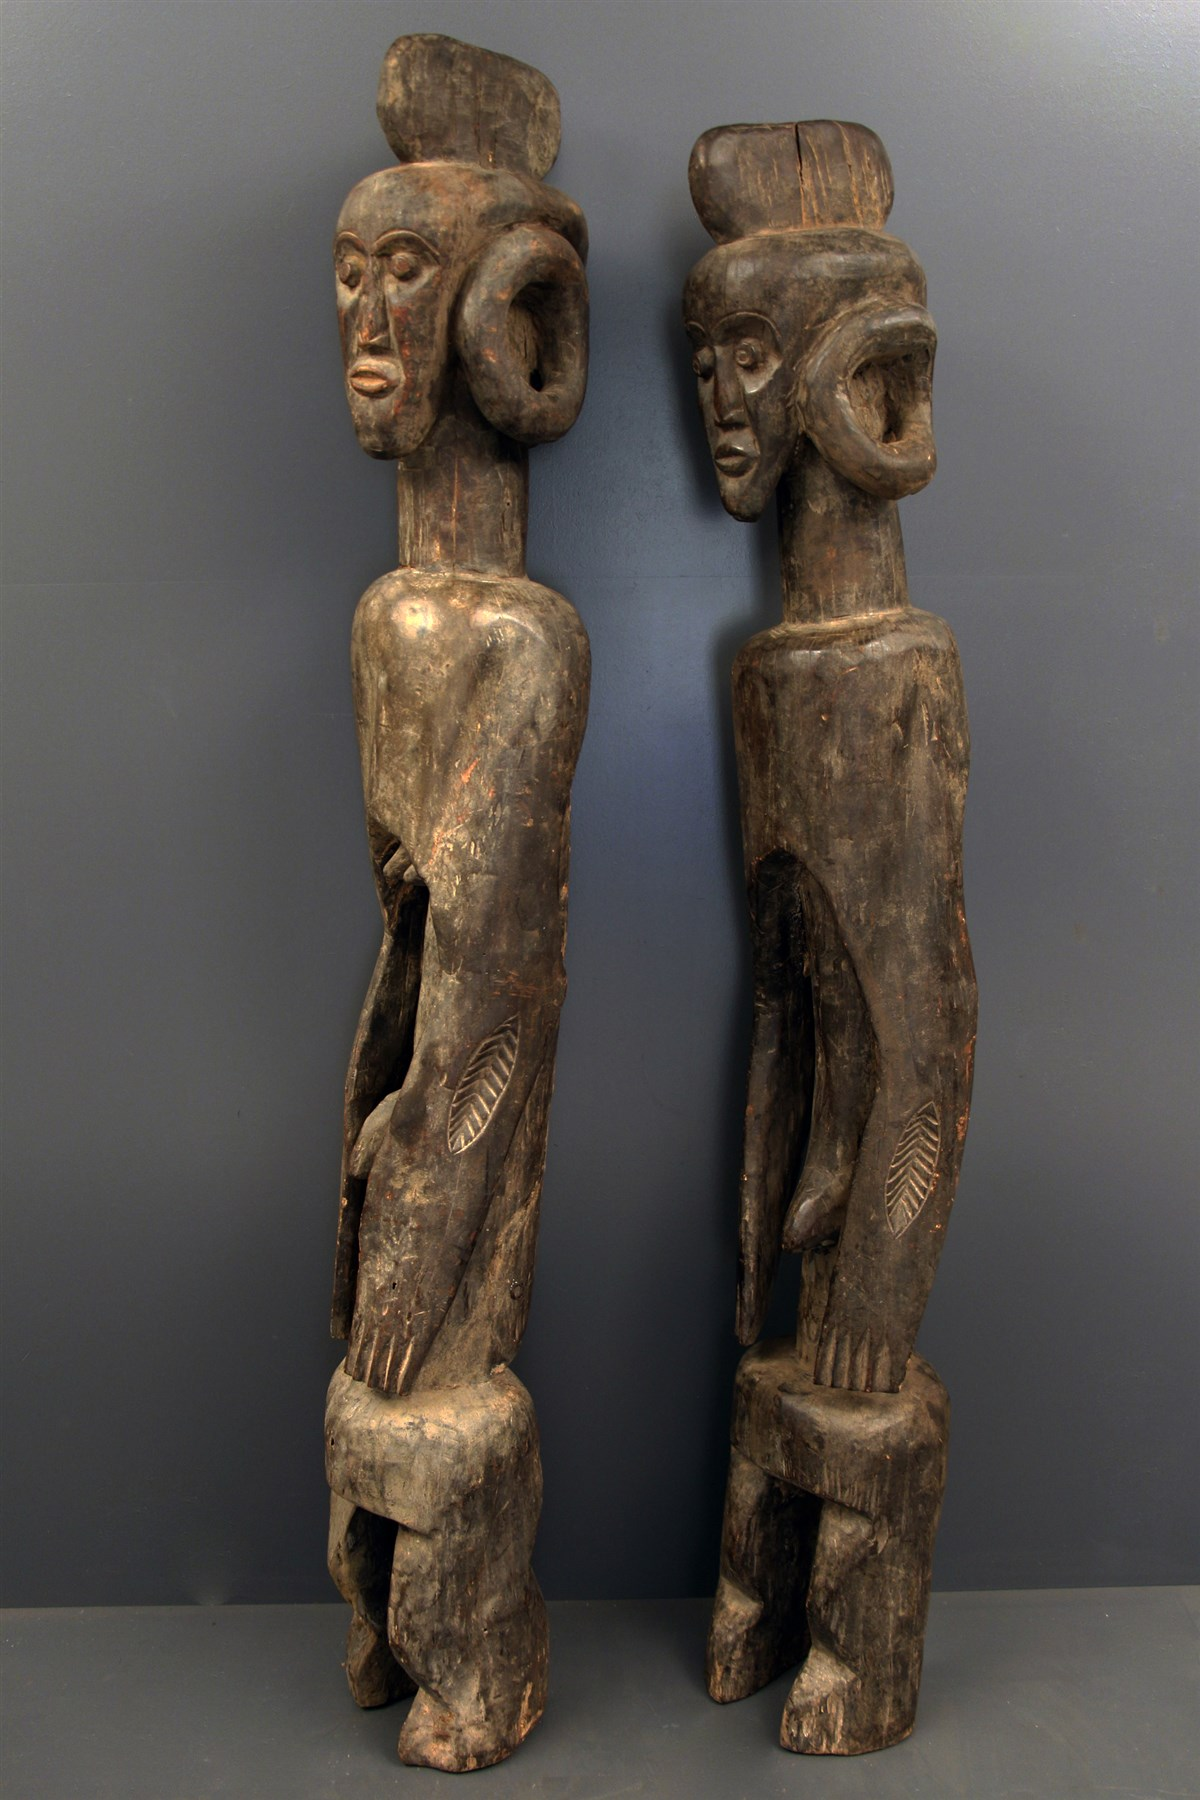 couple de statues mumuy lagalagana 6104 statues art africain. Black Bedroom Furniture Sets. Home Design Ideas